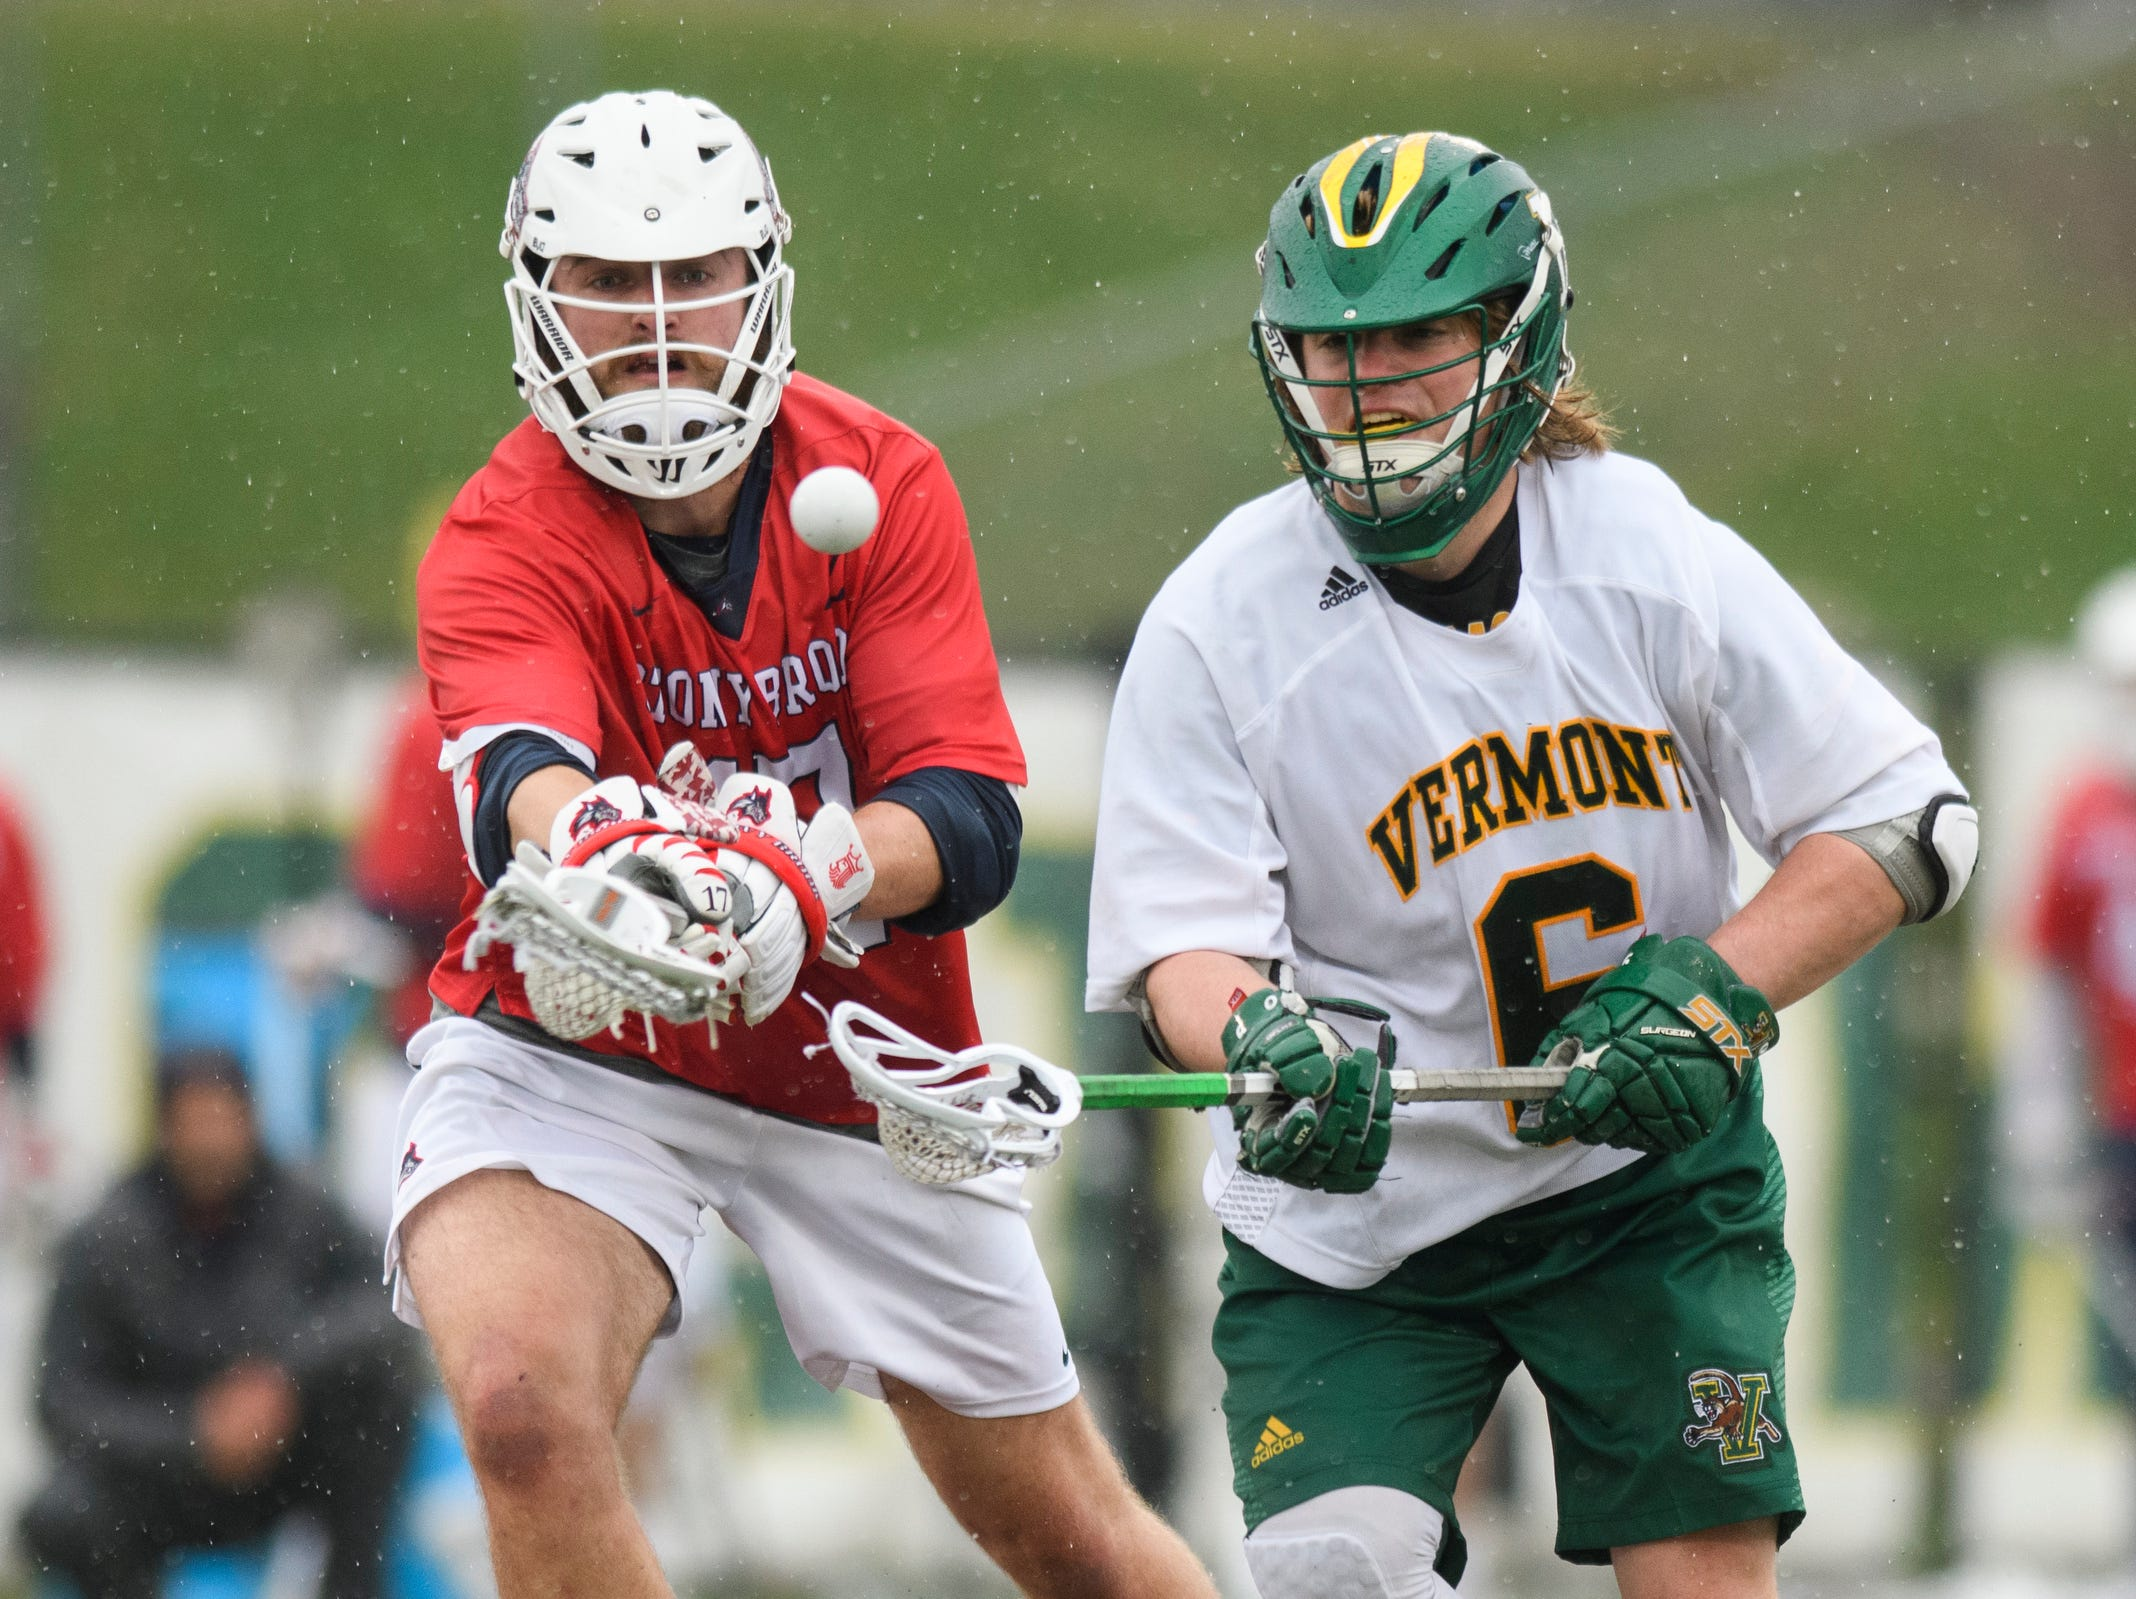 Vermont's Alex Semler (6) battles for the loose ball with Stony Brook's Ryland Rees (17) during the men's lacrosse game between the Stony Brook Sea Wolves and the Vermont Catamounts at Virtue Field on Saturday afternoon April 20, 2019 in Burlington, Vermont.